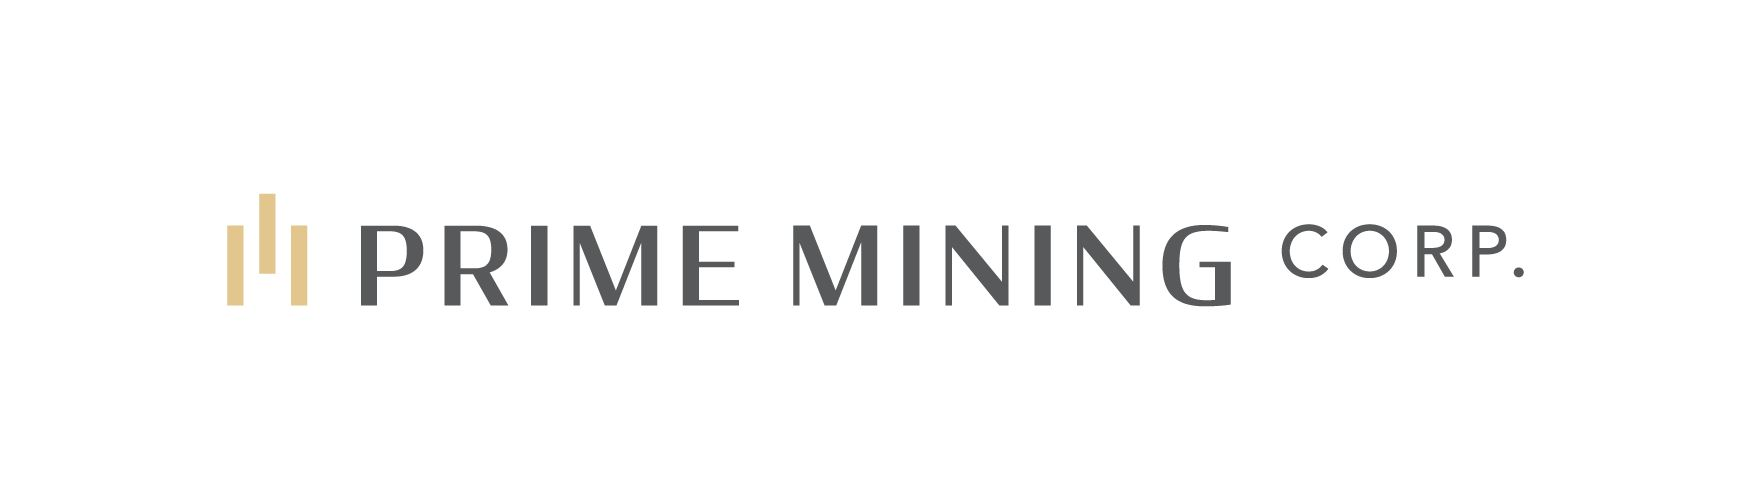 Prime Mining Completes Acquisition of Los Reyes Gold-Silver Project